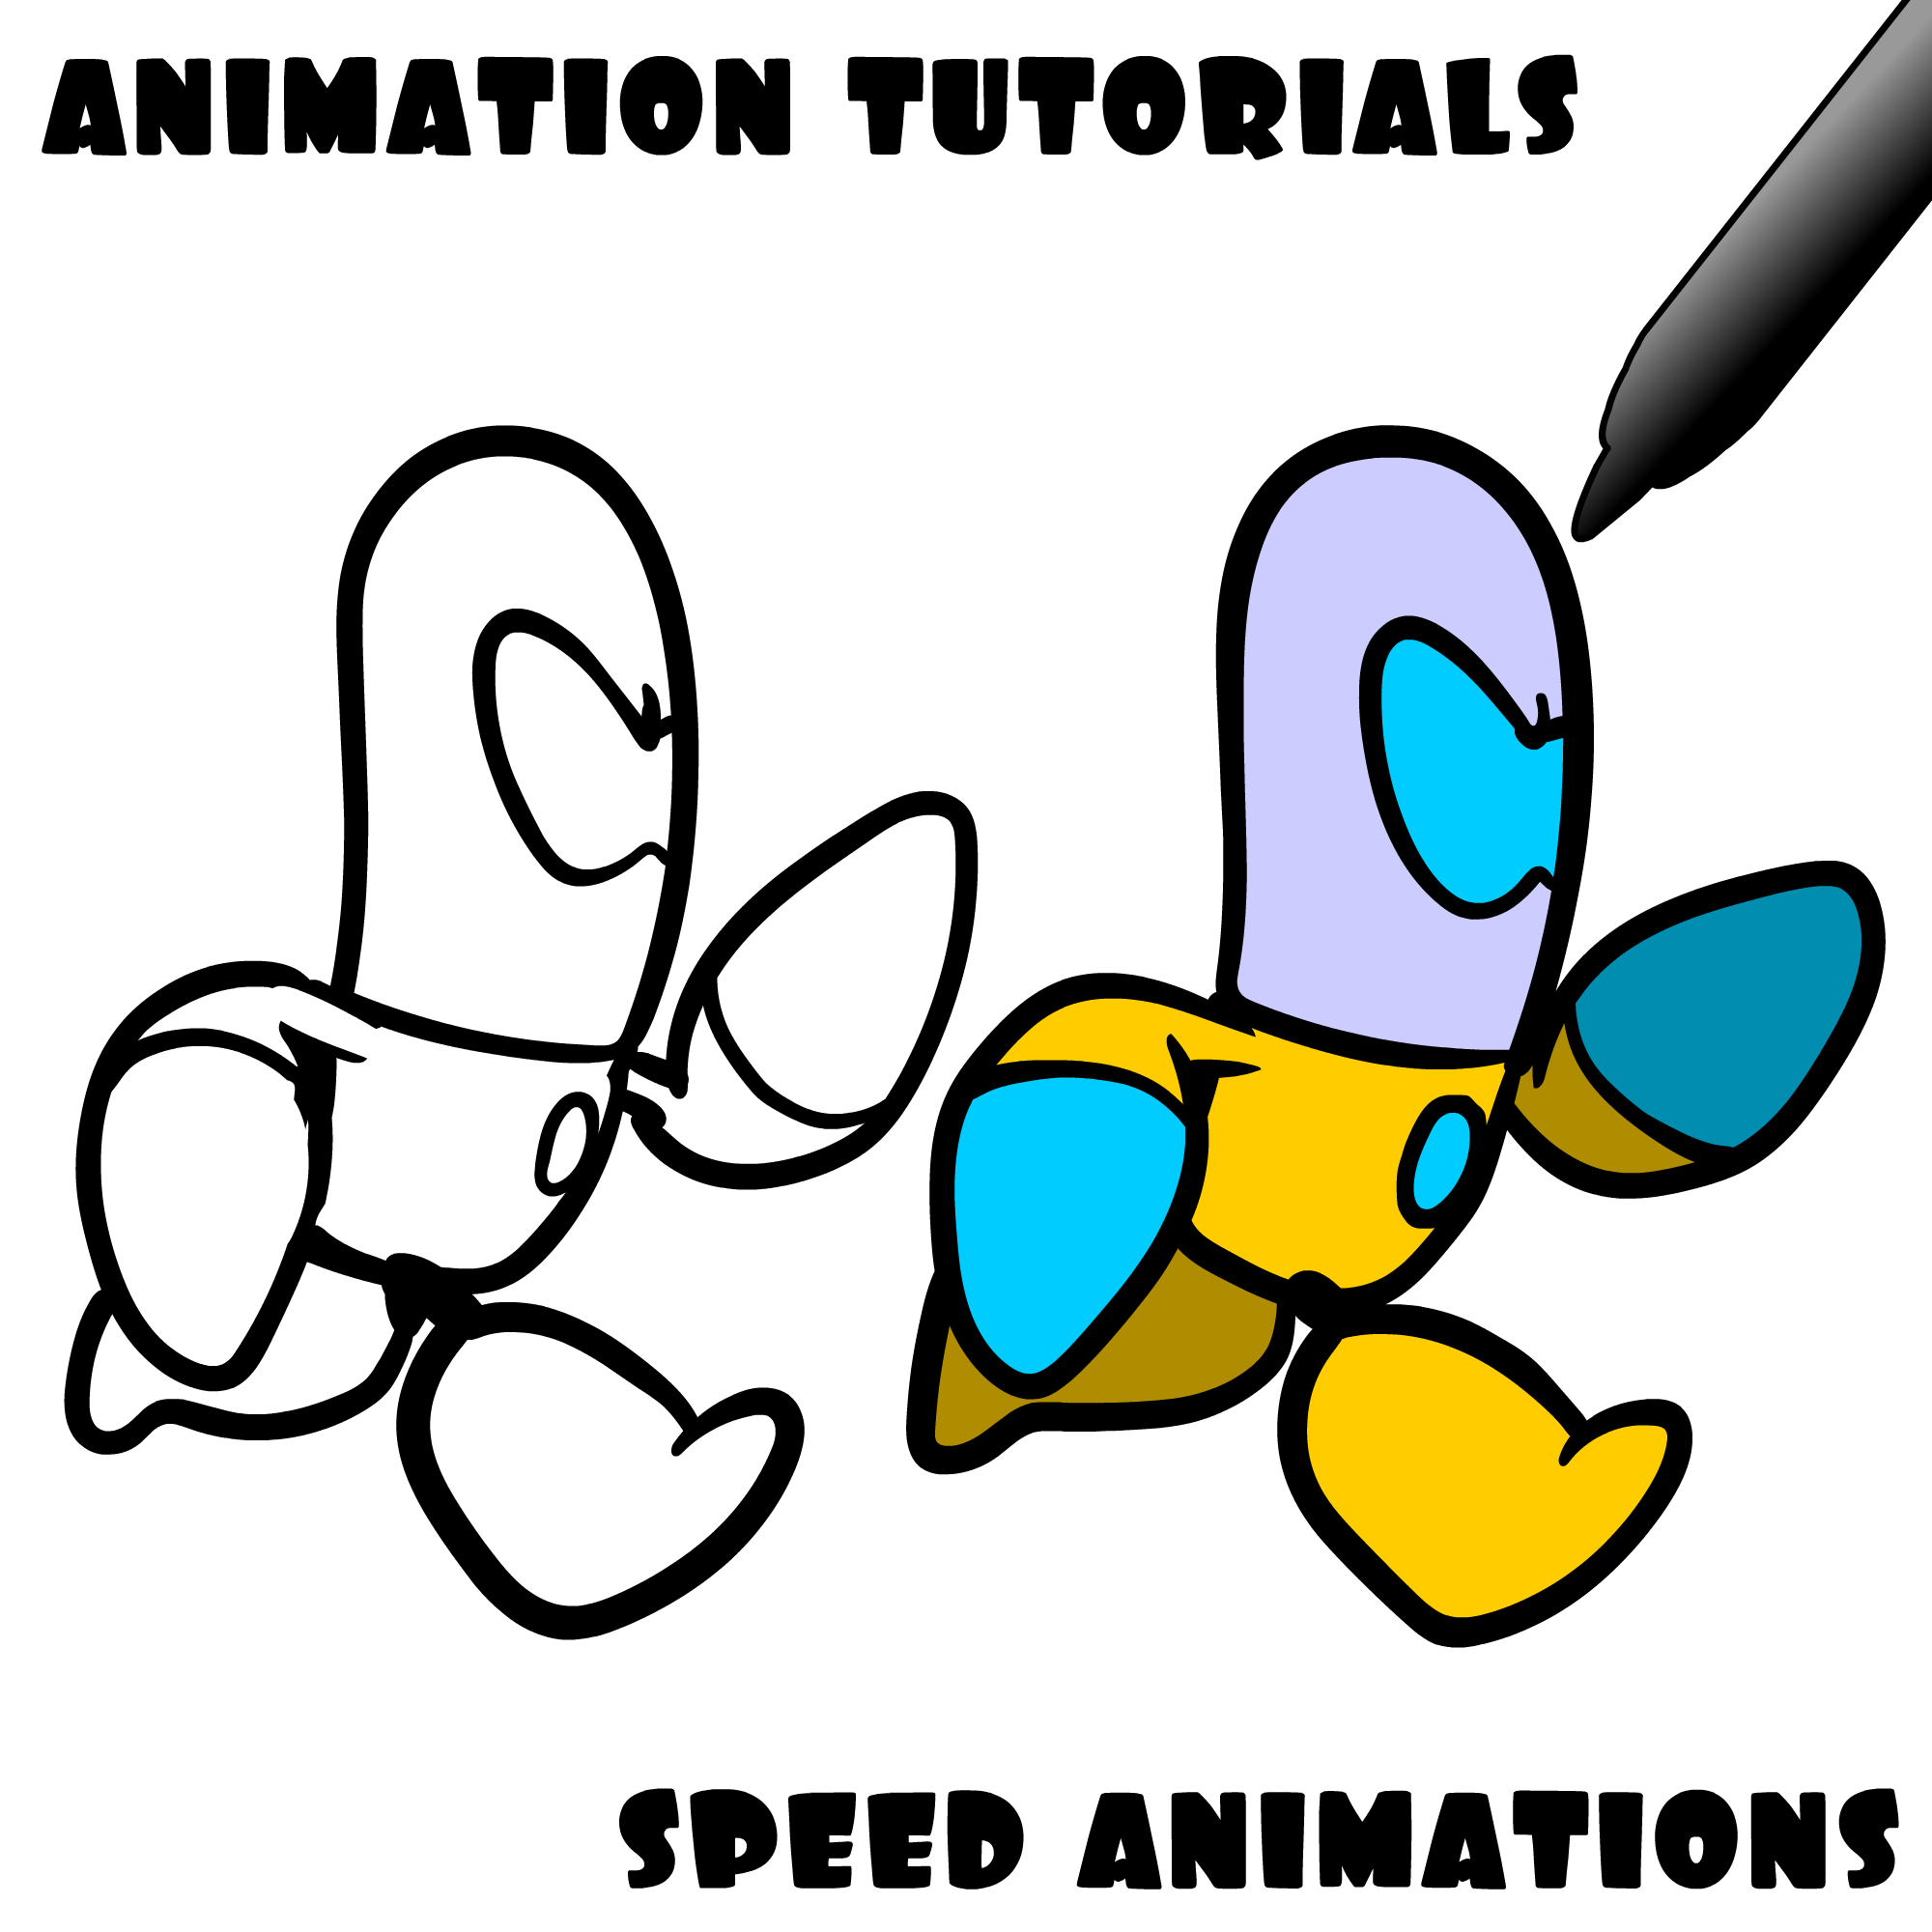 click the image above to watch Videos with speed animations and animation tutorials